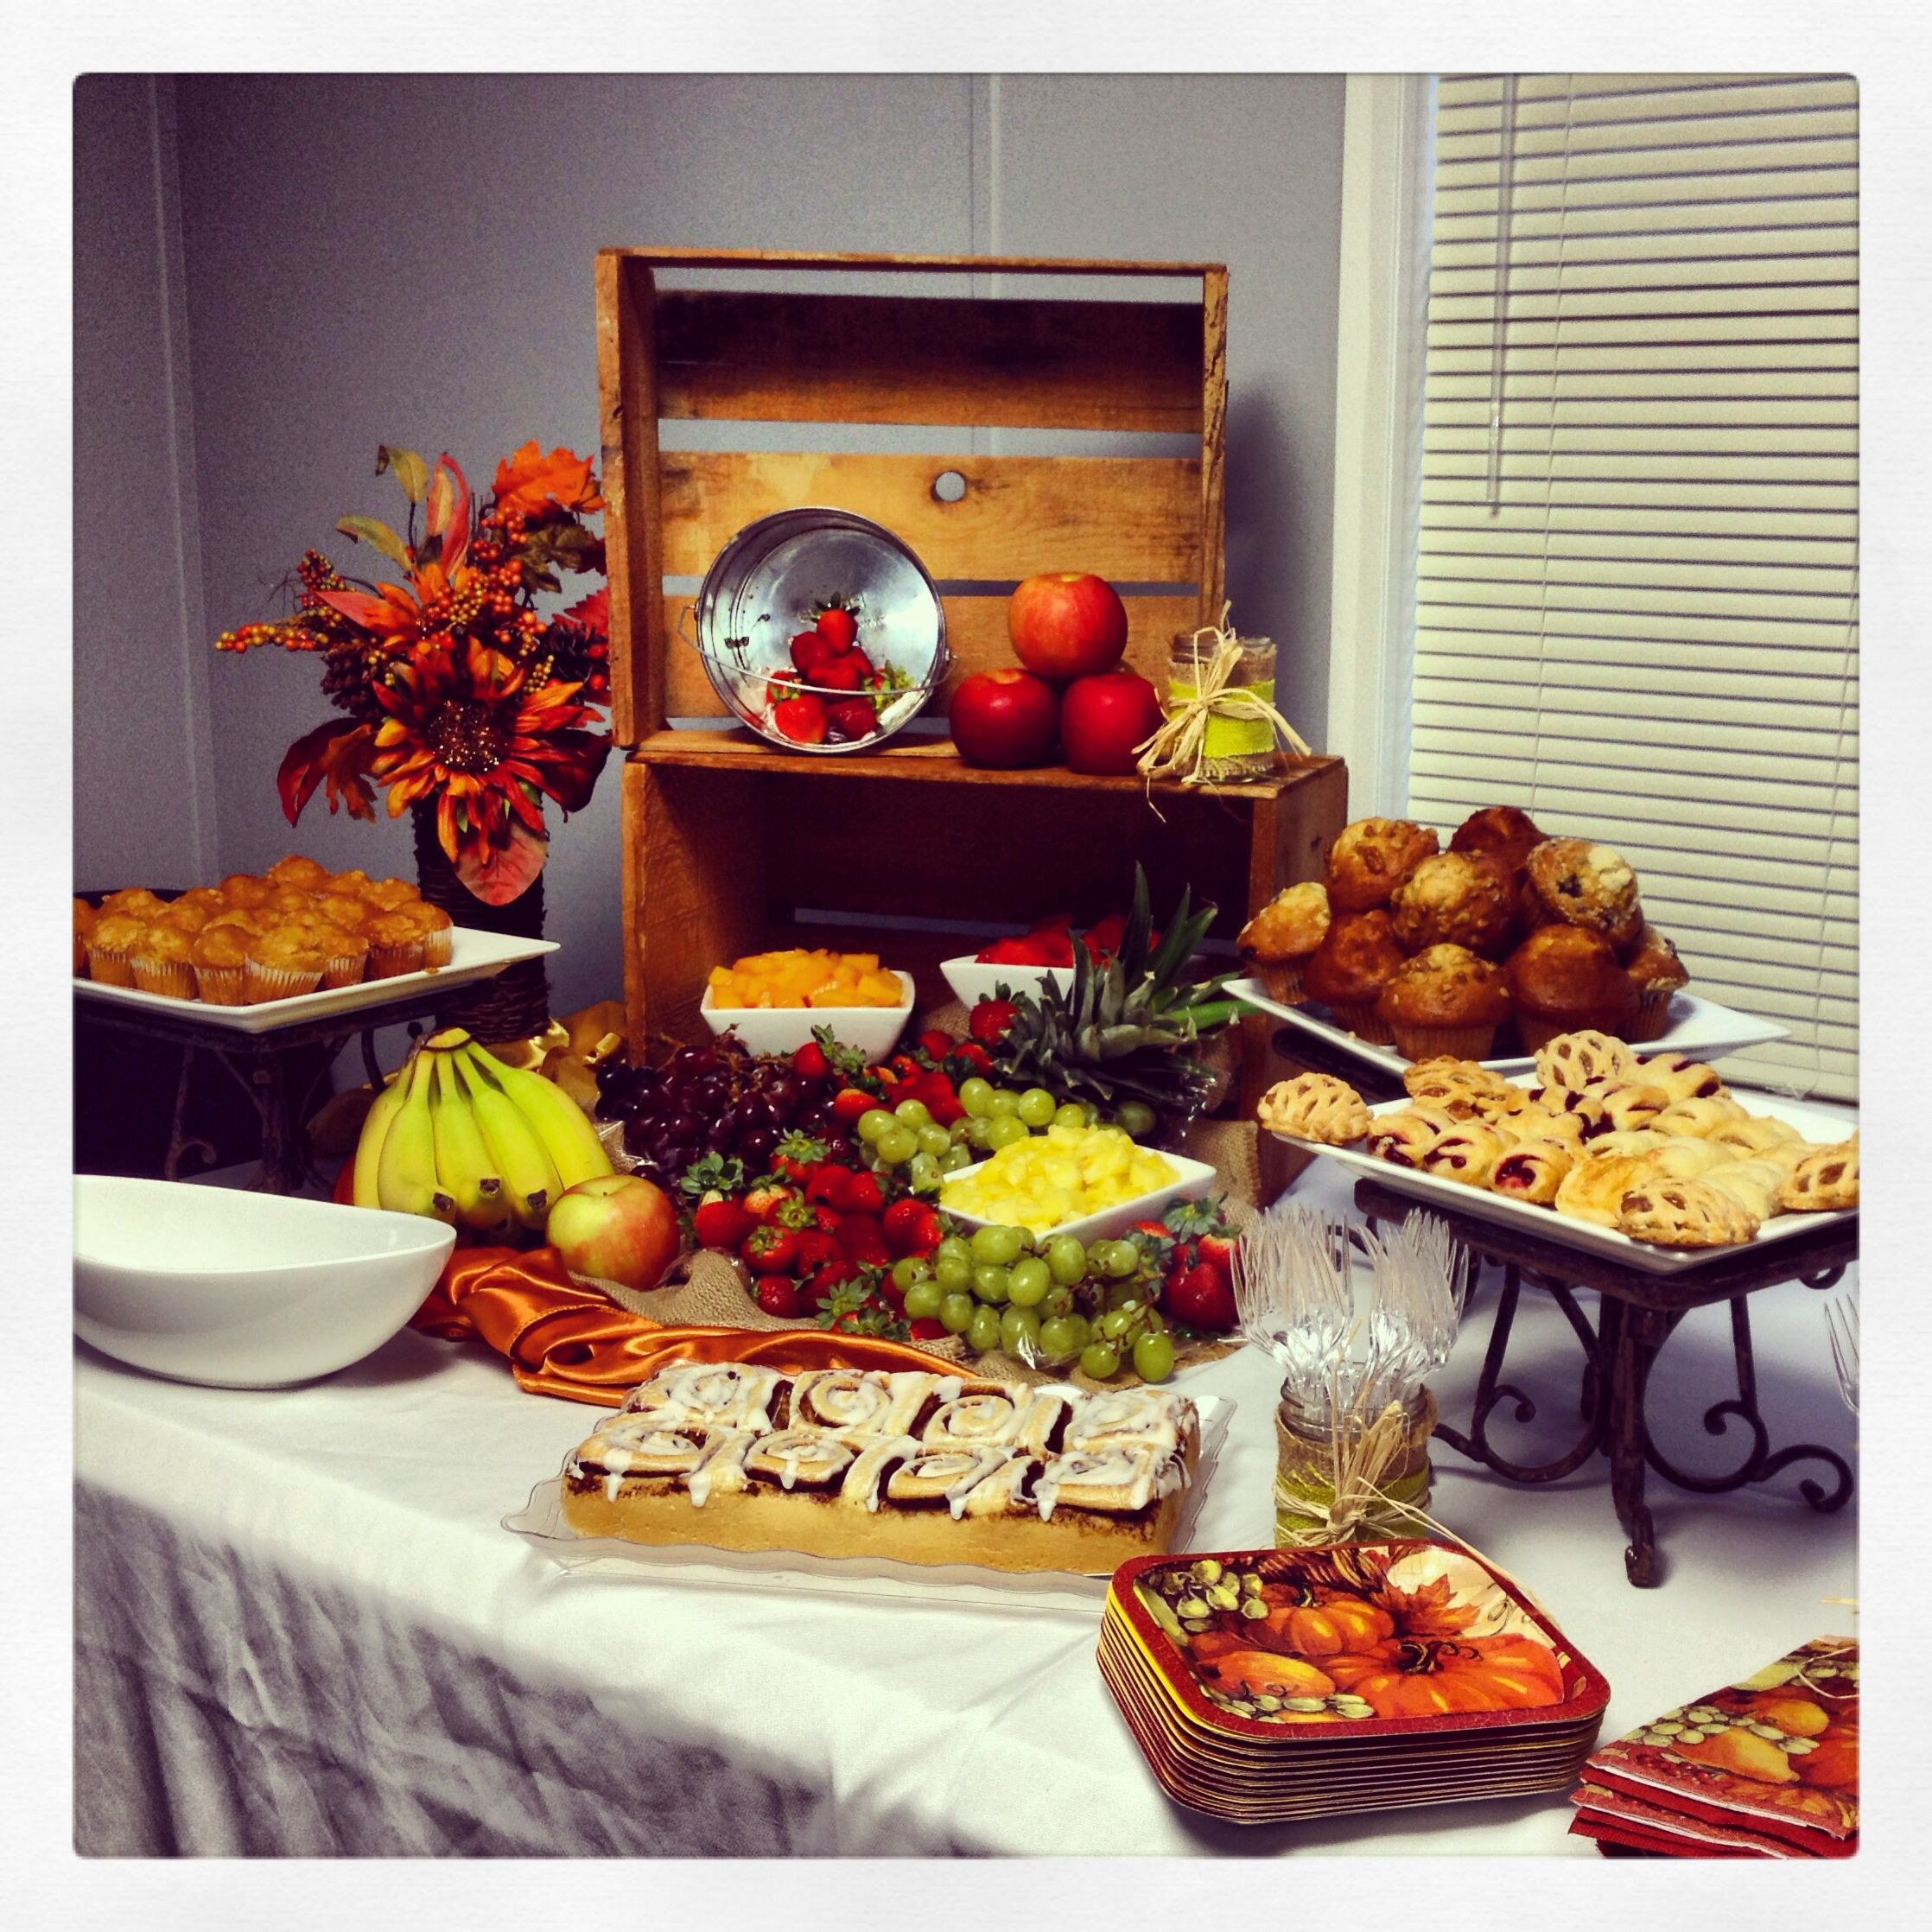 Breakfast display I did for a company's corporate meeting